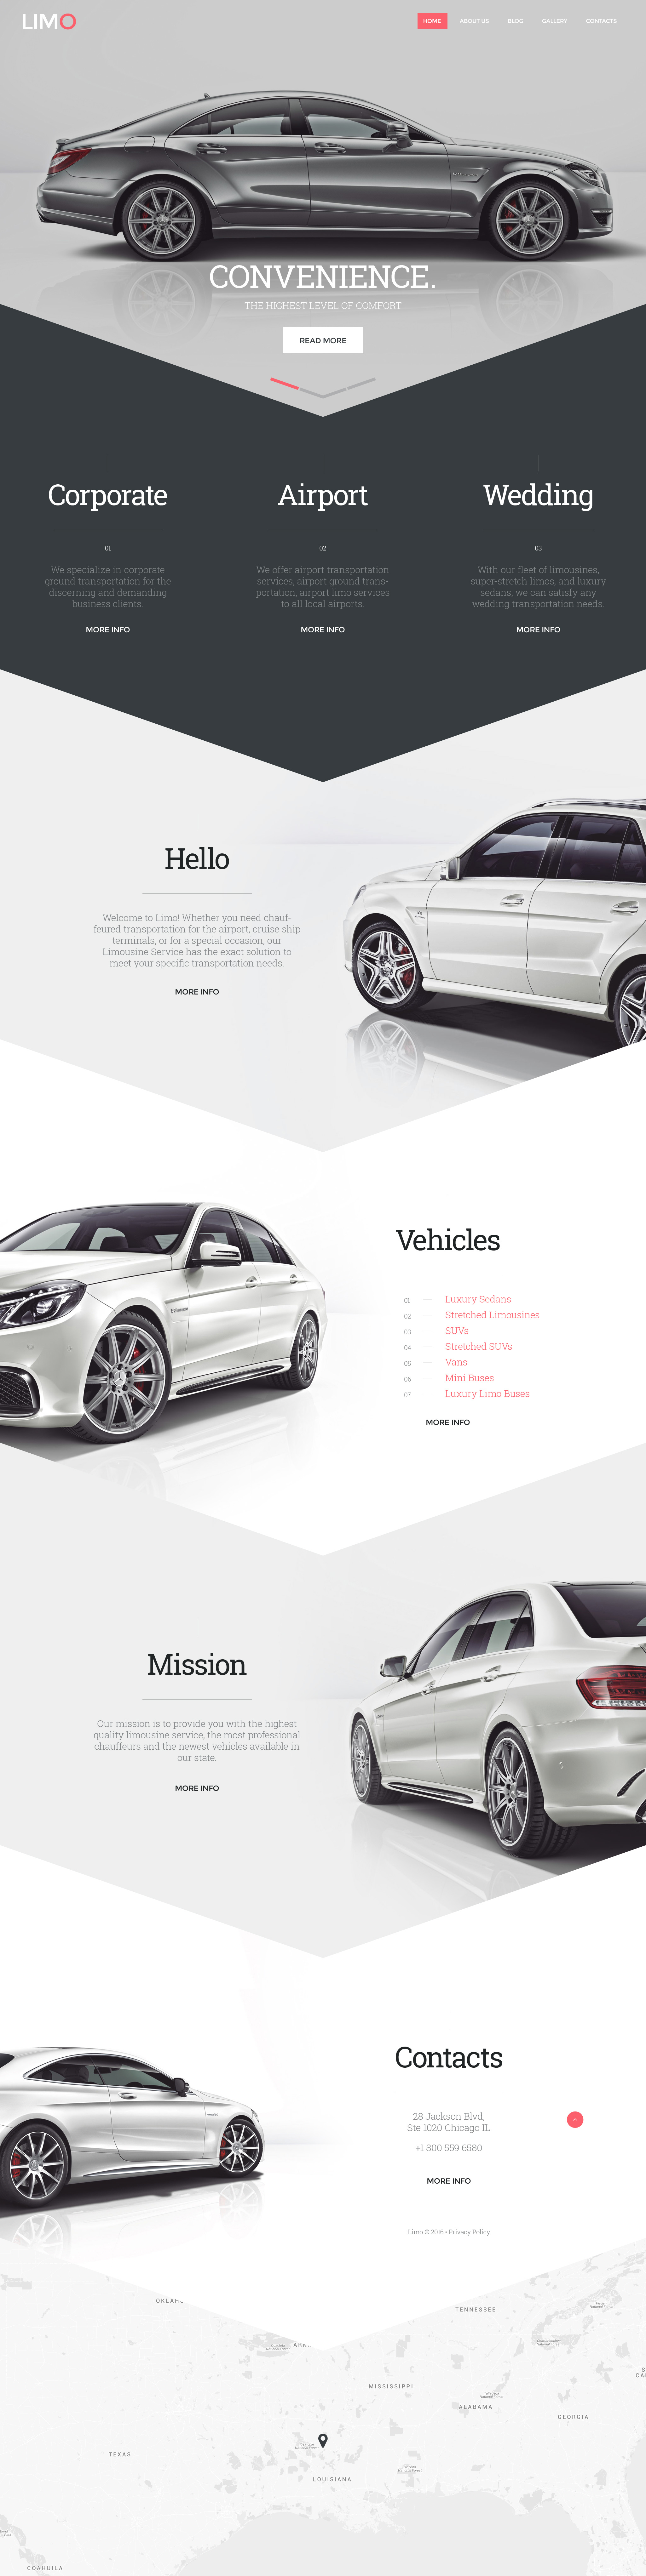 Limo - Transportation & Transfer Services Website Template